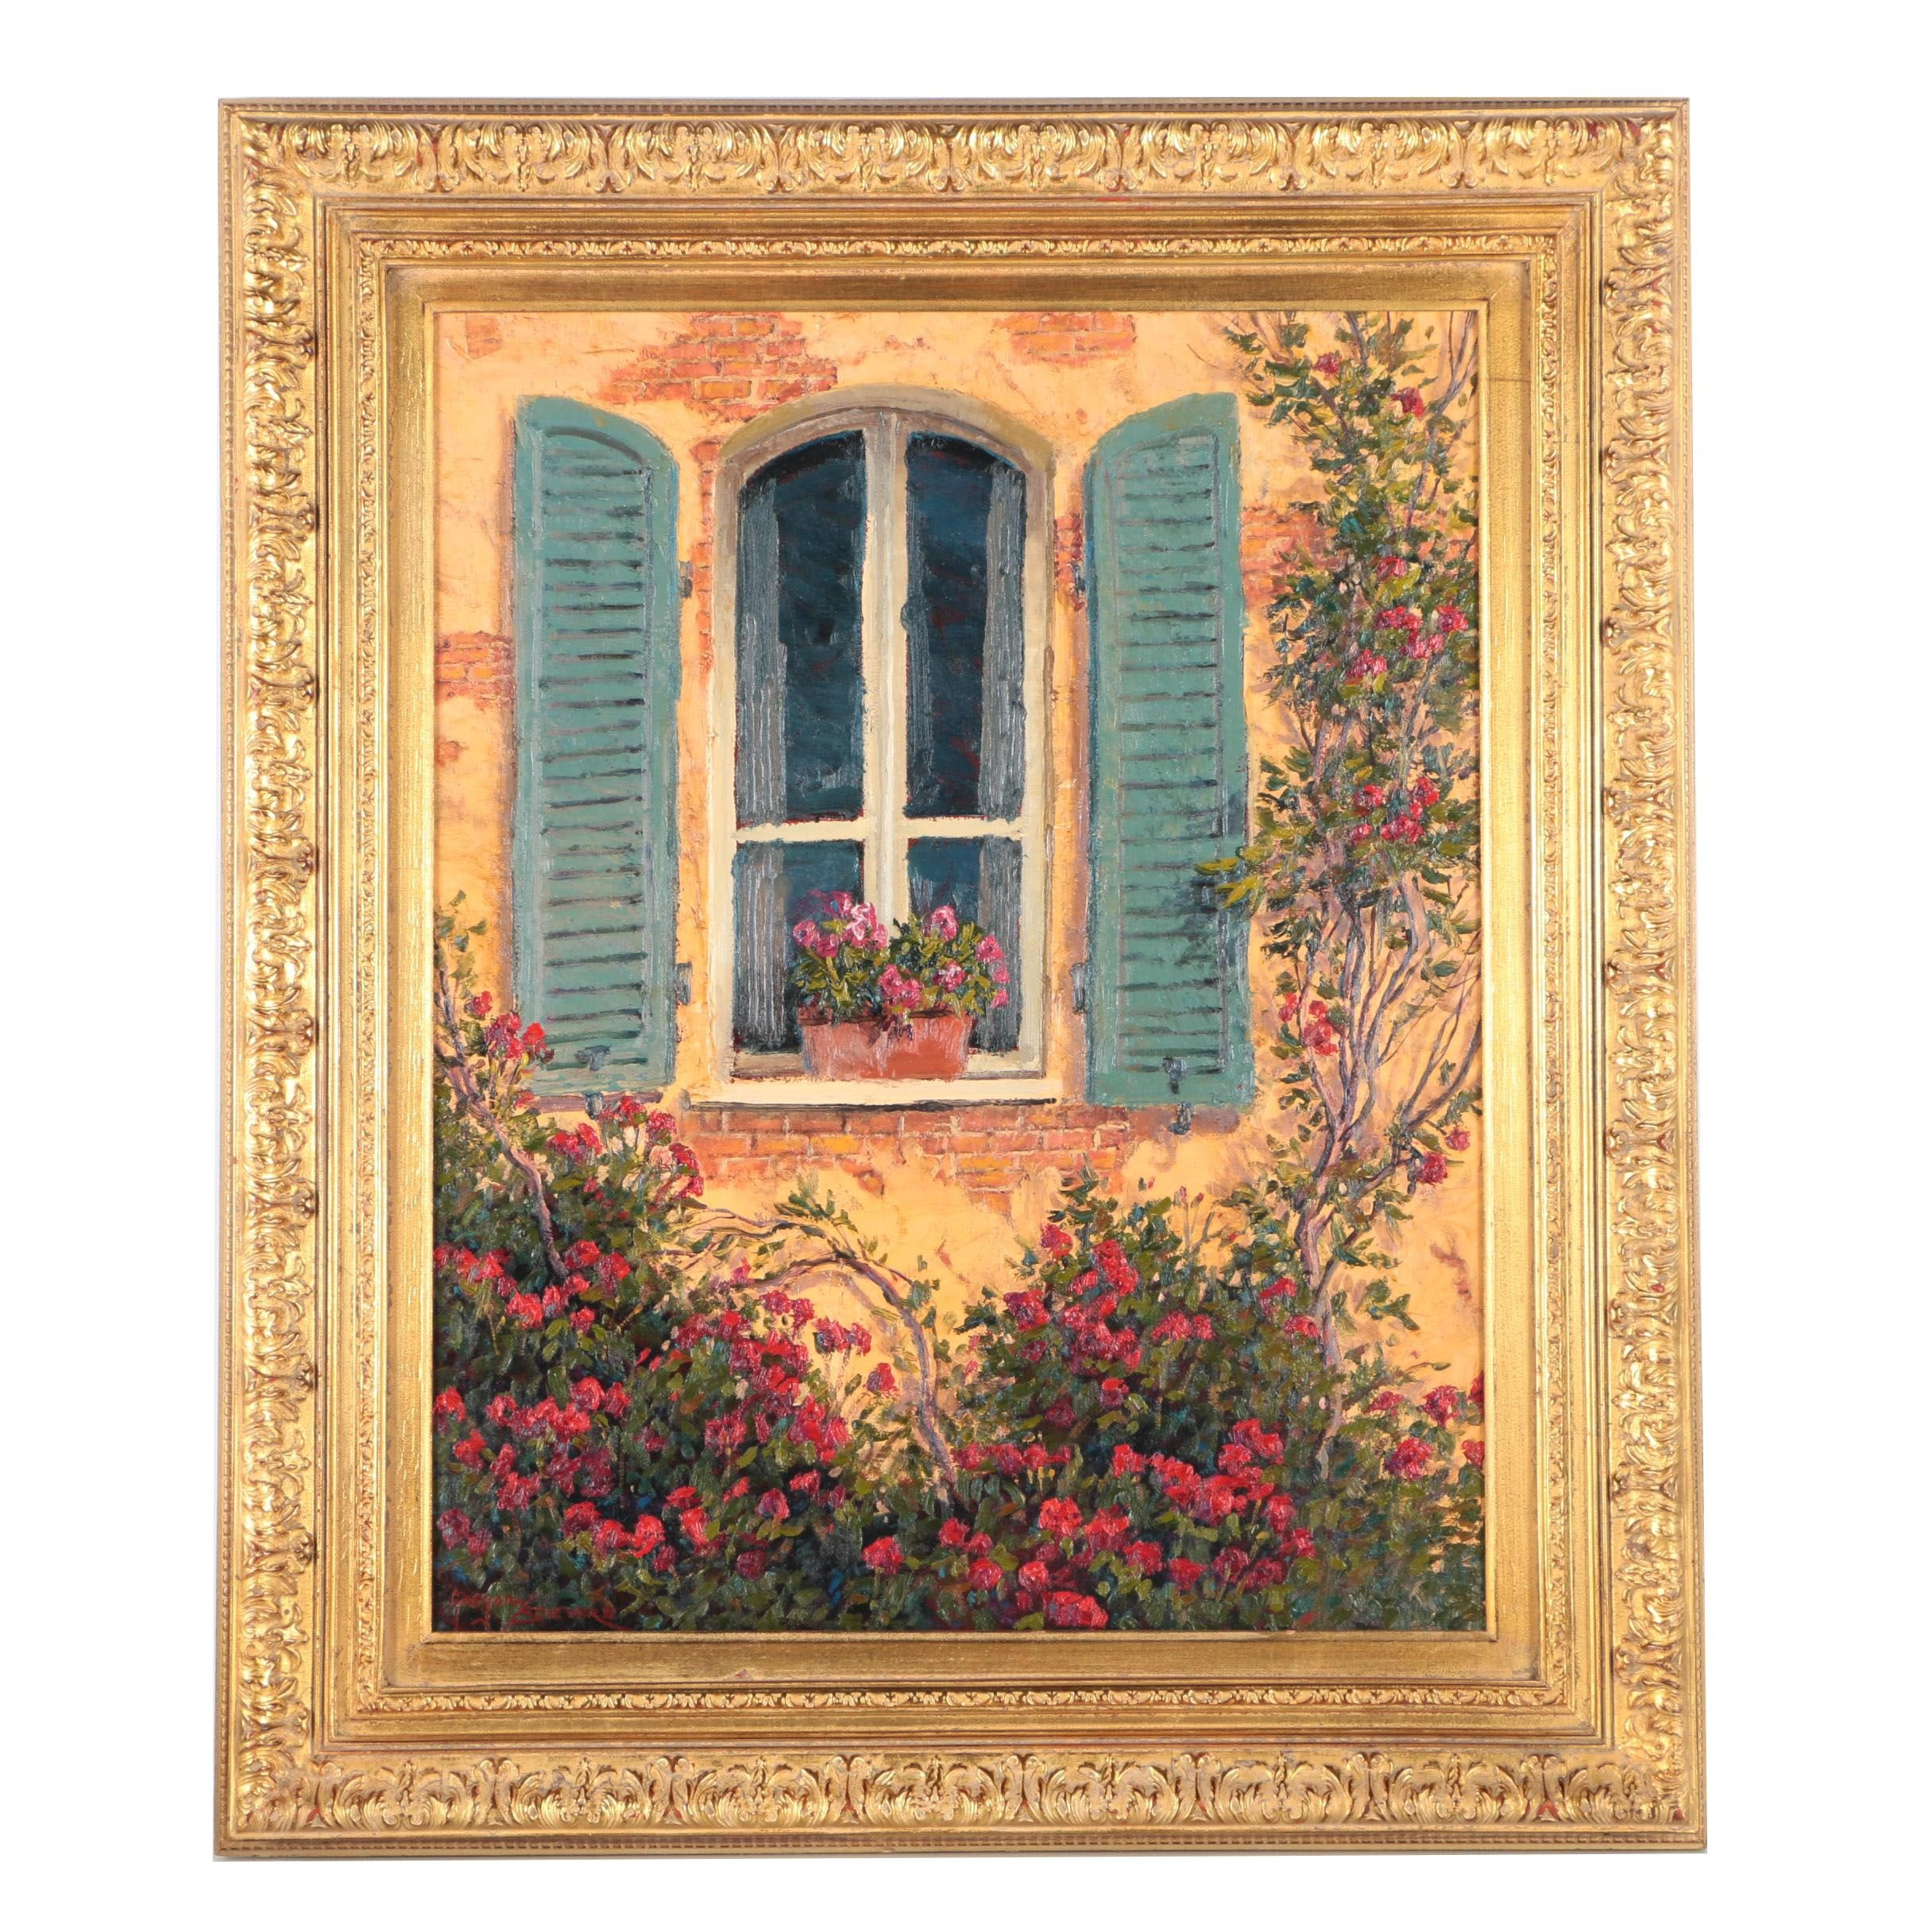 Gregory Sievers Oil Painting on Canvas of Window Surrounded by Blossoms